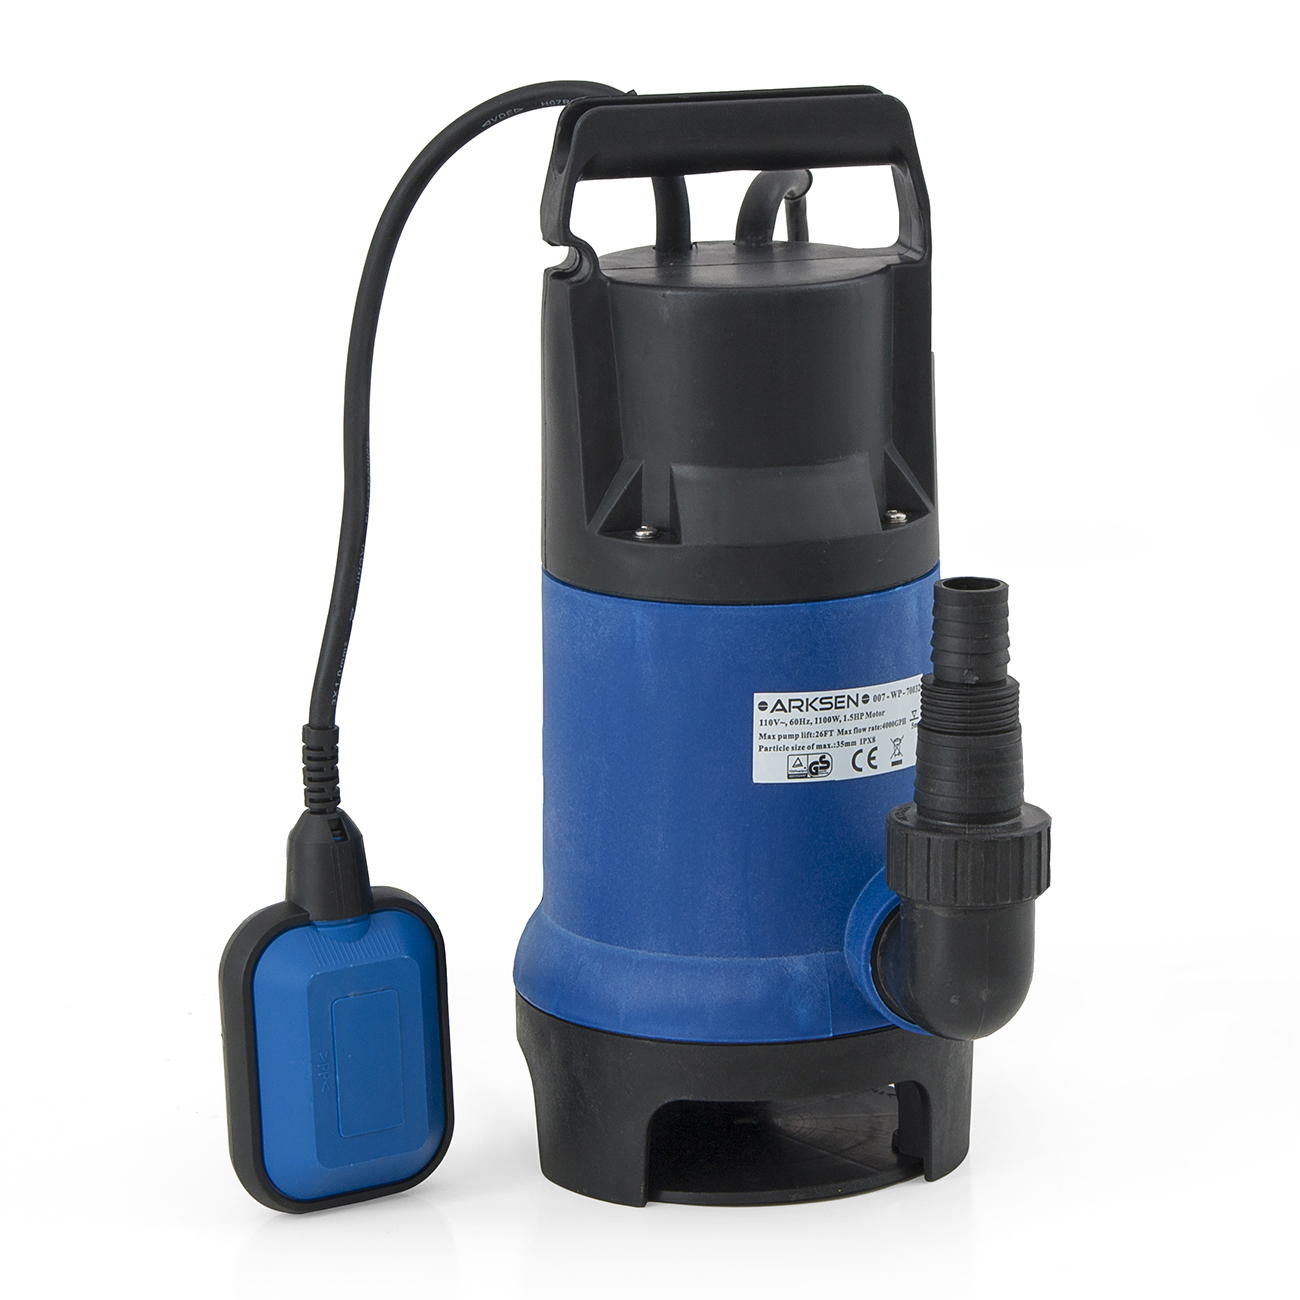 1100w submersible pump 1 5hp 4000gph w 25ft cord water for Water pump to drain pond